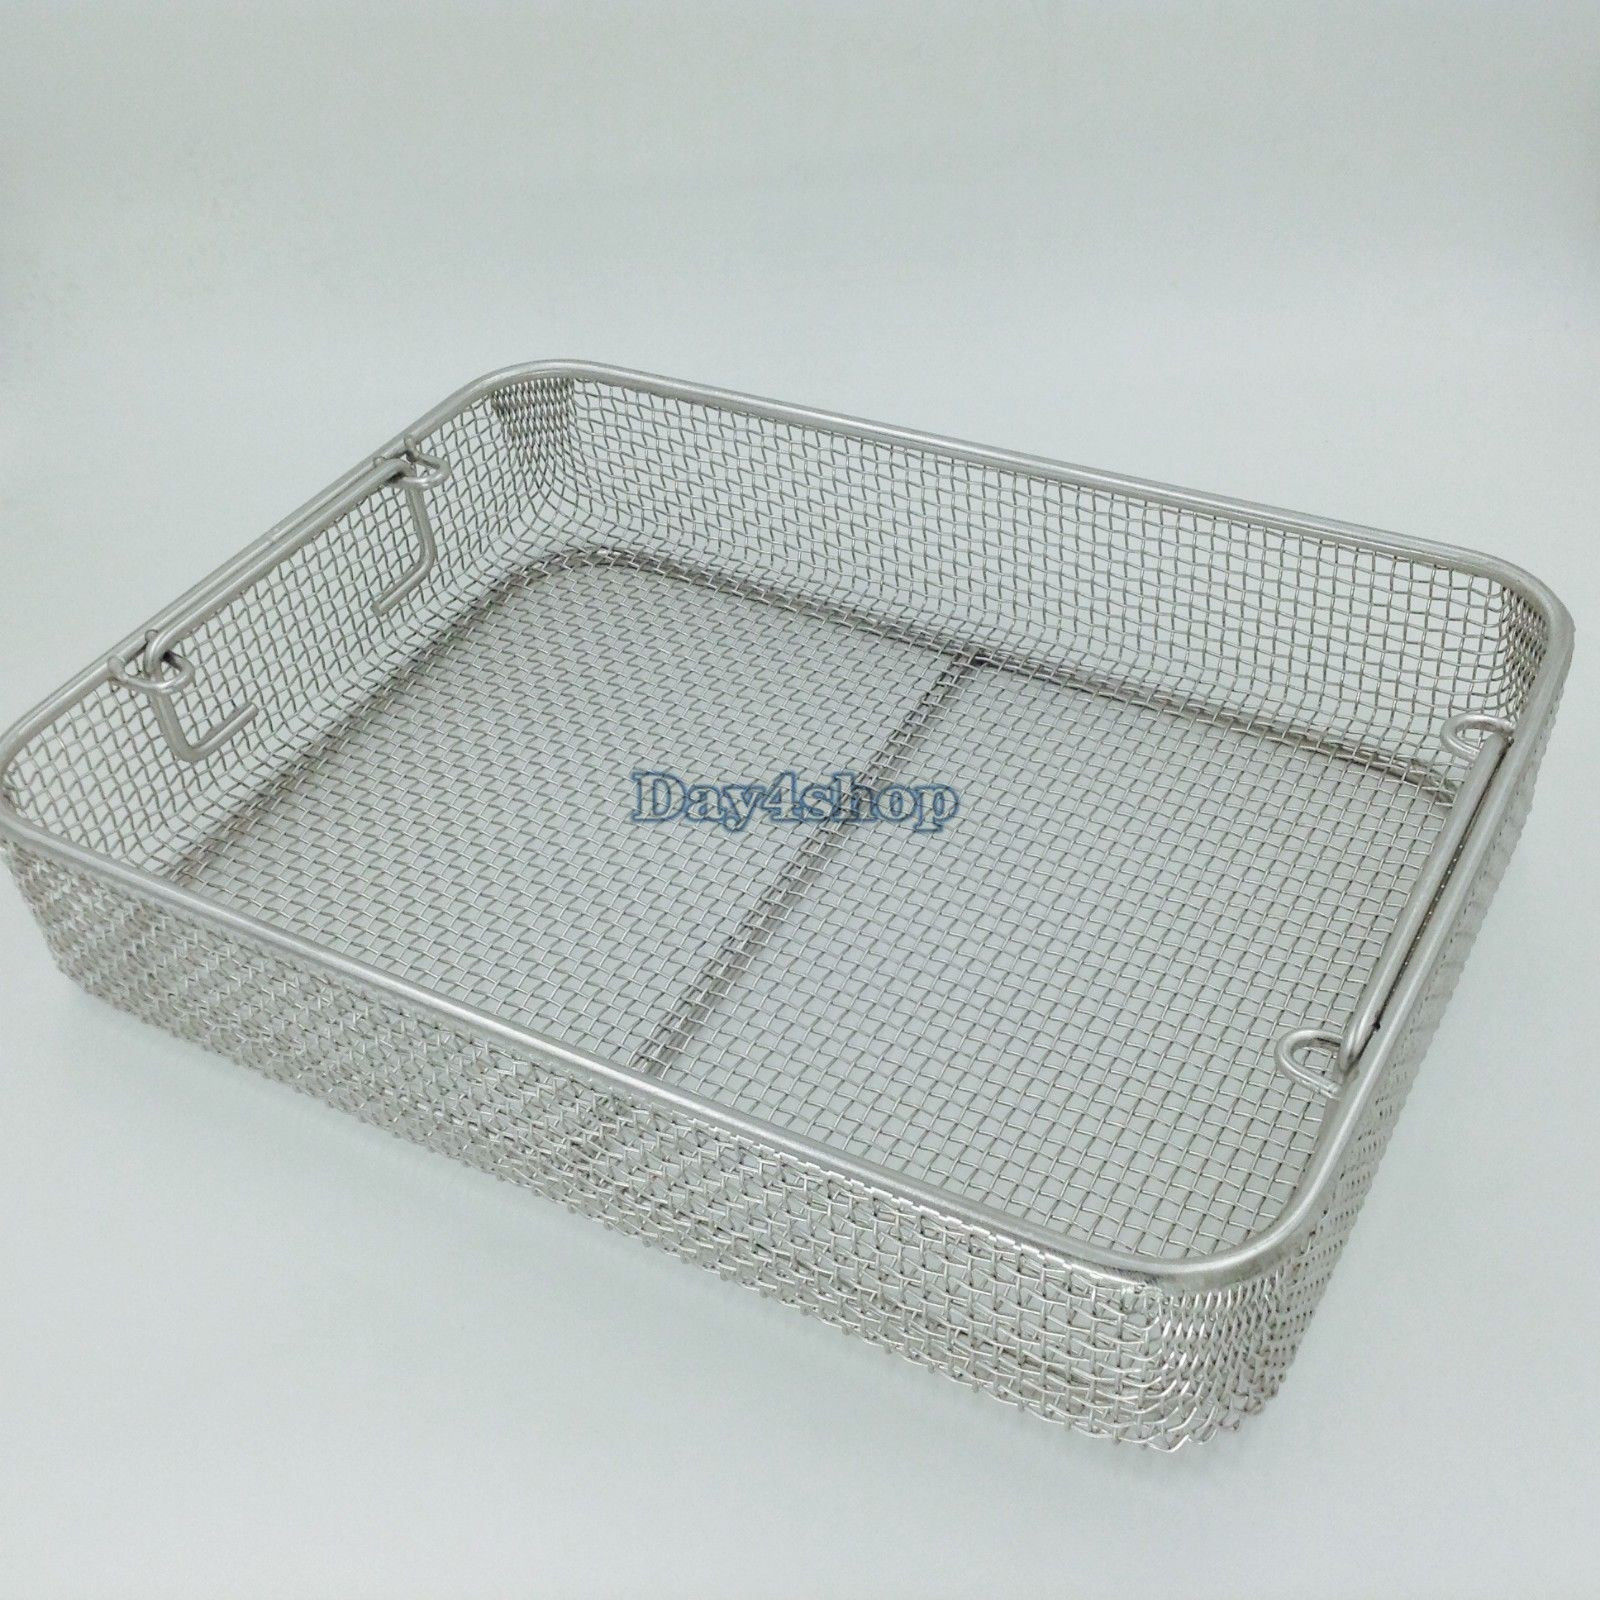 где купить New Stainless steel sterilization tray case box surgical instrument по лучшей цене